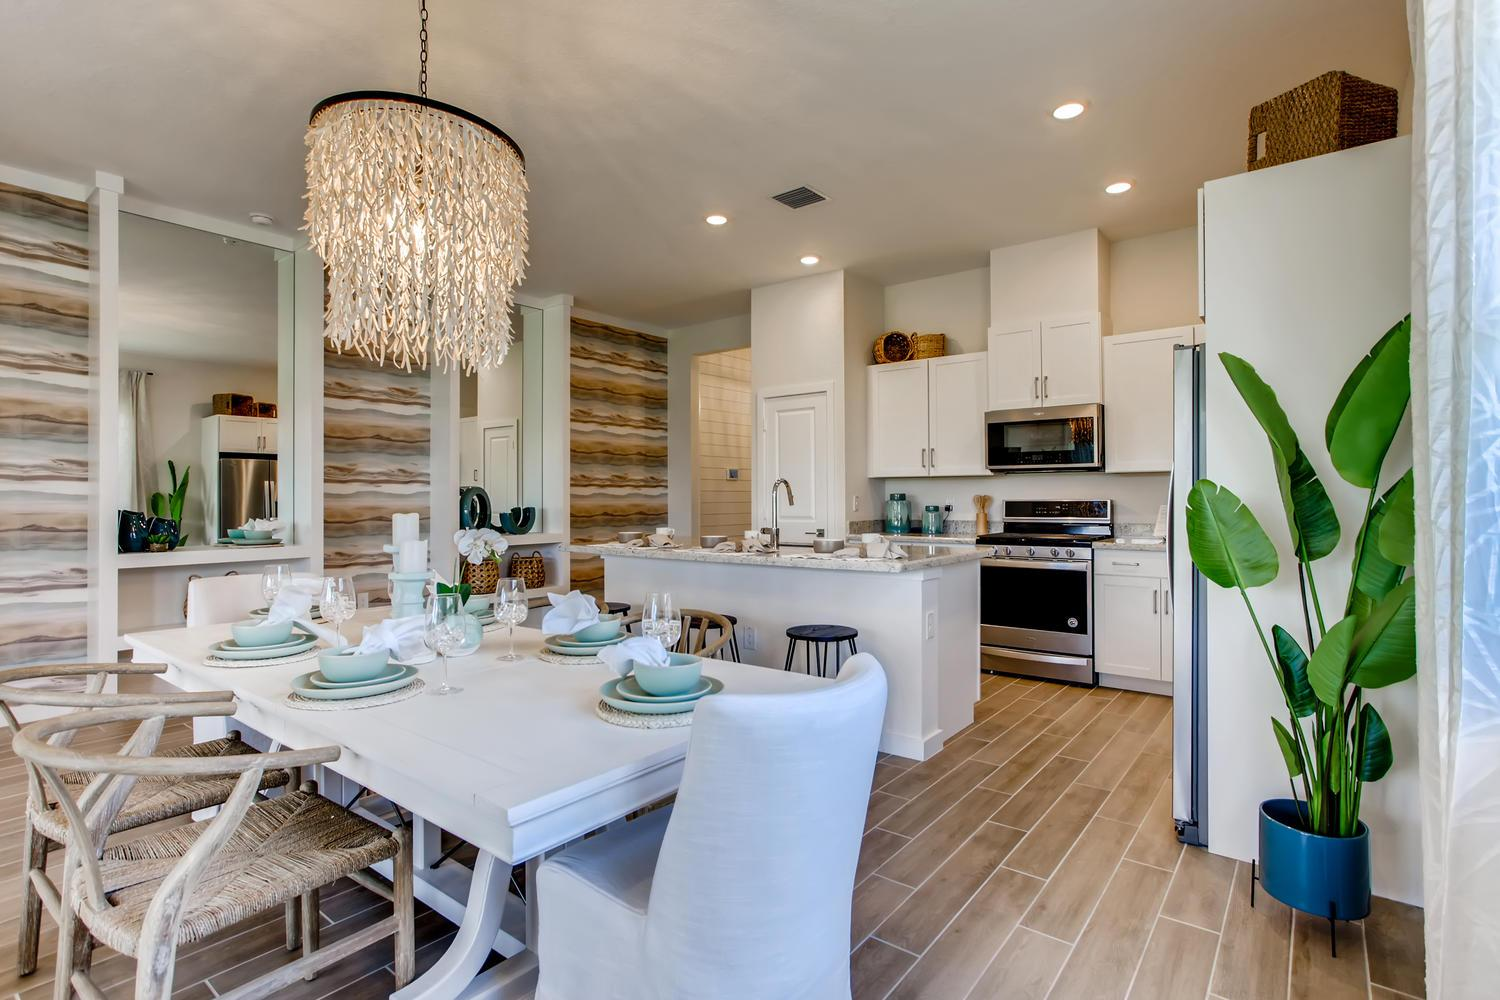 Kitchen featured in the Sydney By D.R. Horton in Palm Beach County, FL